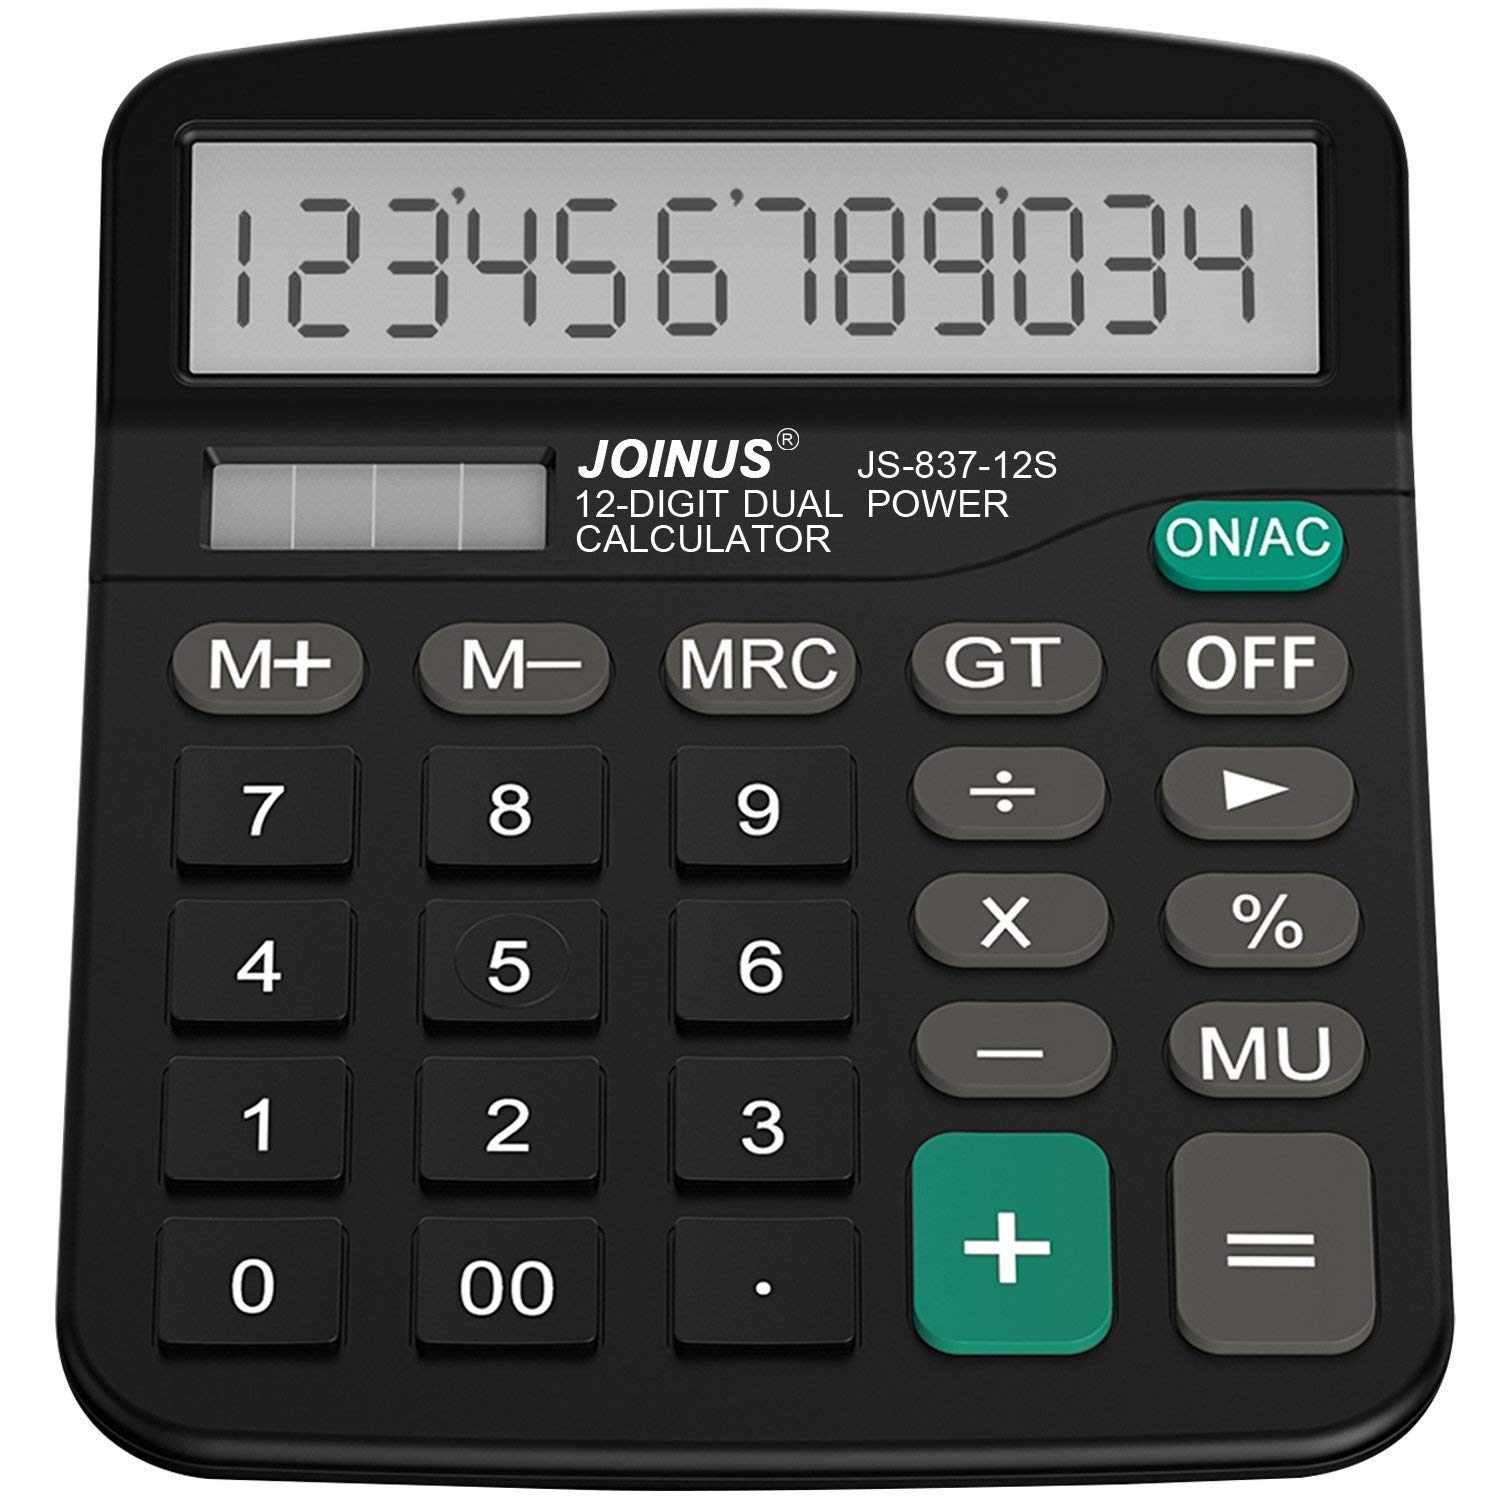 Calculator, CITIZEN Standard Function Electronics Desktop Calculators, Solar and Battery Dual Power, Big Button 12 Digit Large LCD Display, Handheld for Daily and Basic Office, Black UbiddaDirect